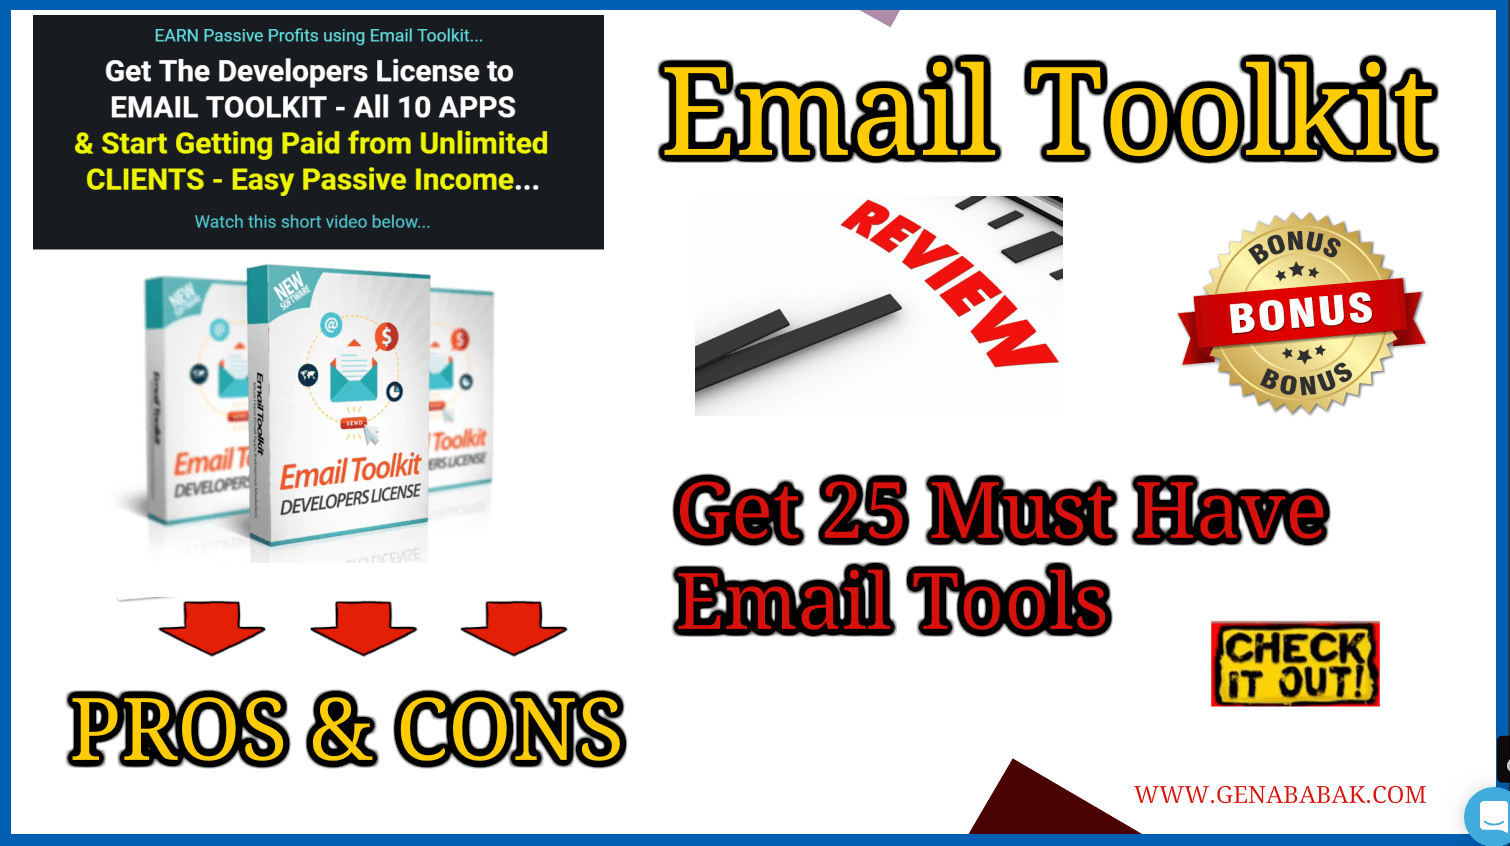 Email Toolkit Review – Get Access to 25 Must Have Email Tools in 2019